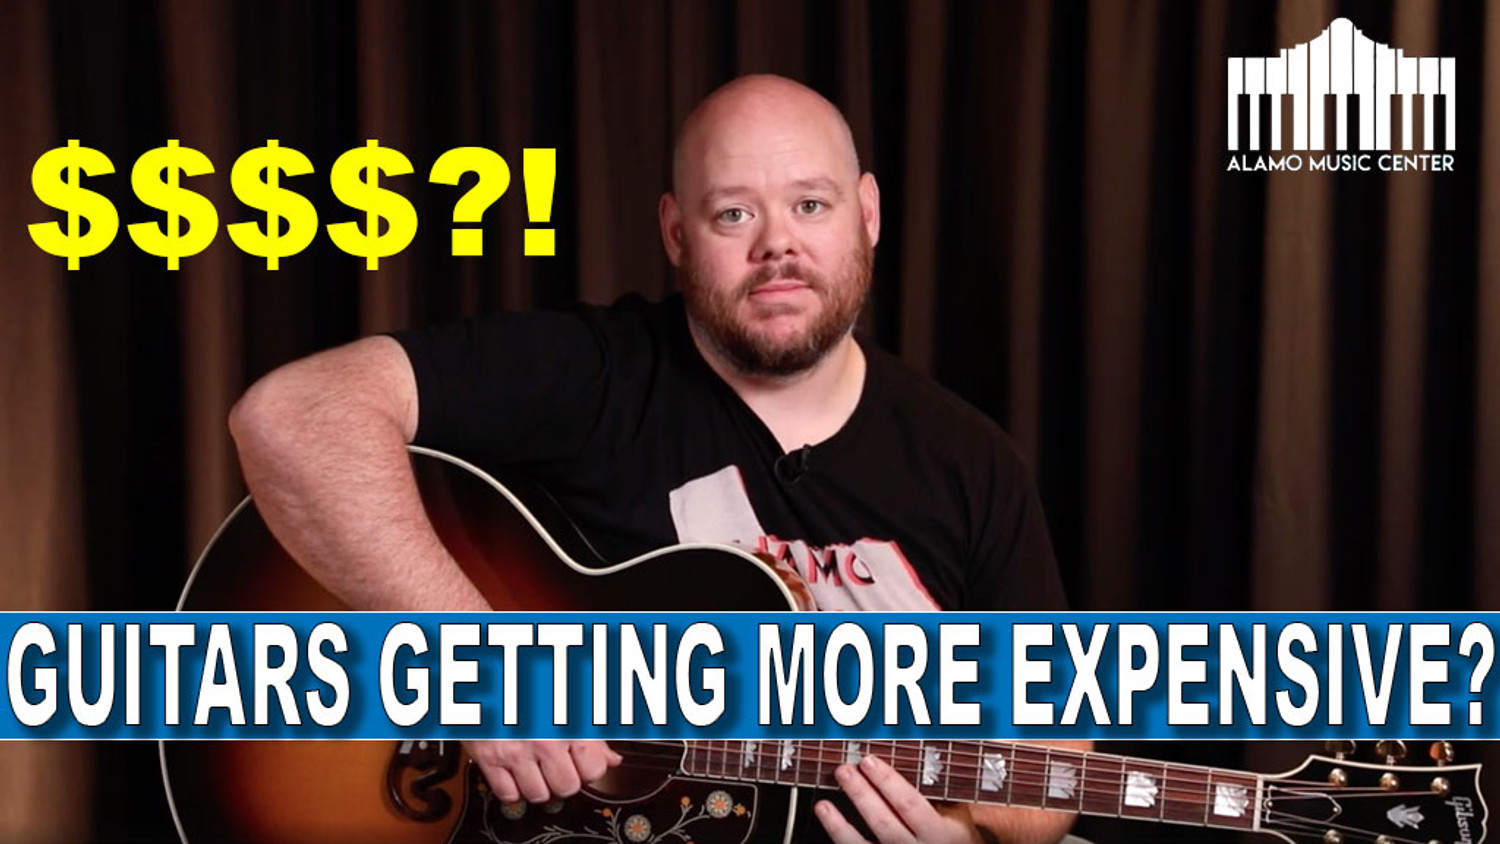 Are Guitars Getting More Expensive Or More Affordable?